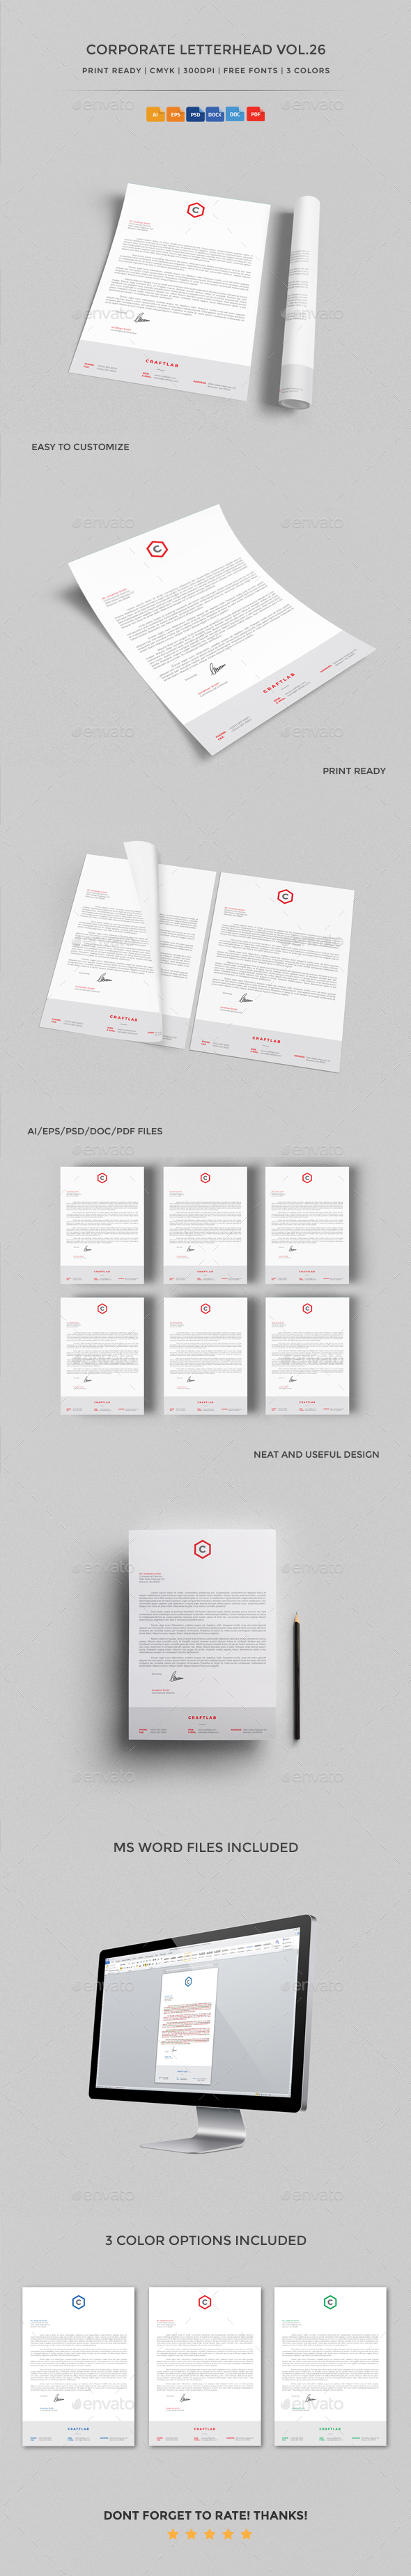 Corporate Letterhead vol.26 with MS Word DOC/DOCX - Stationery Print Templates